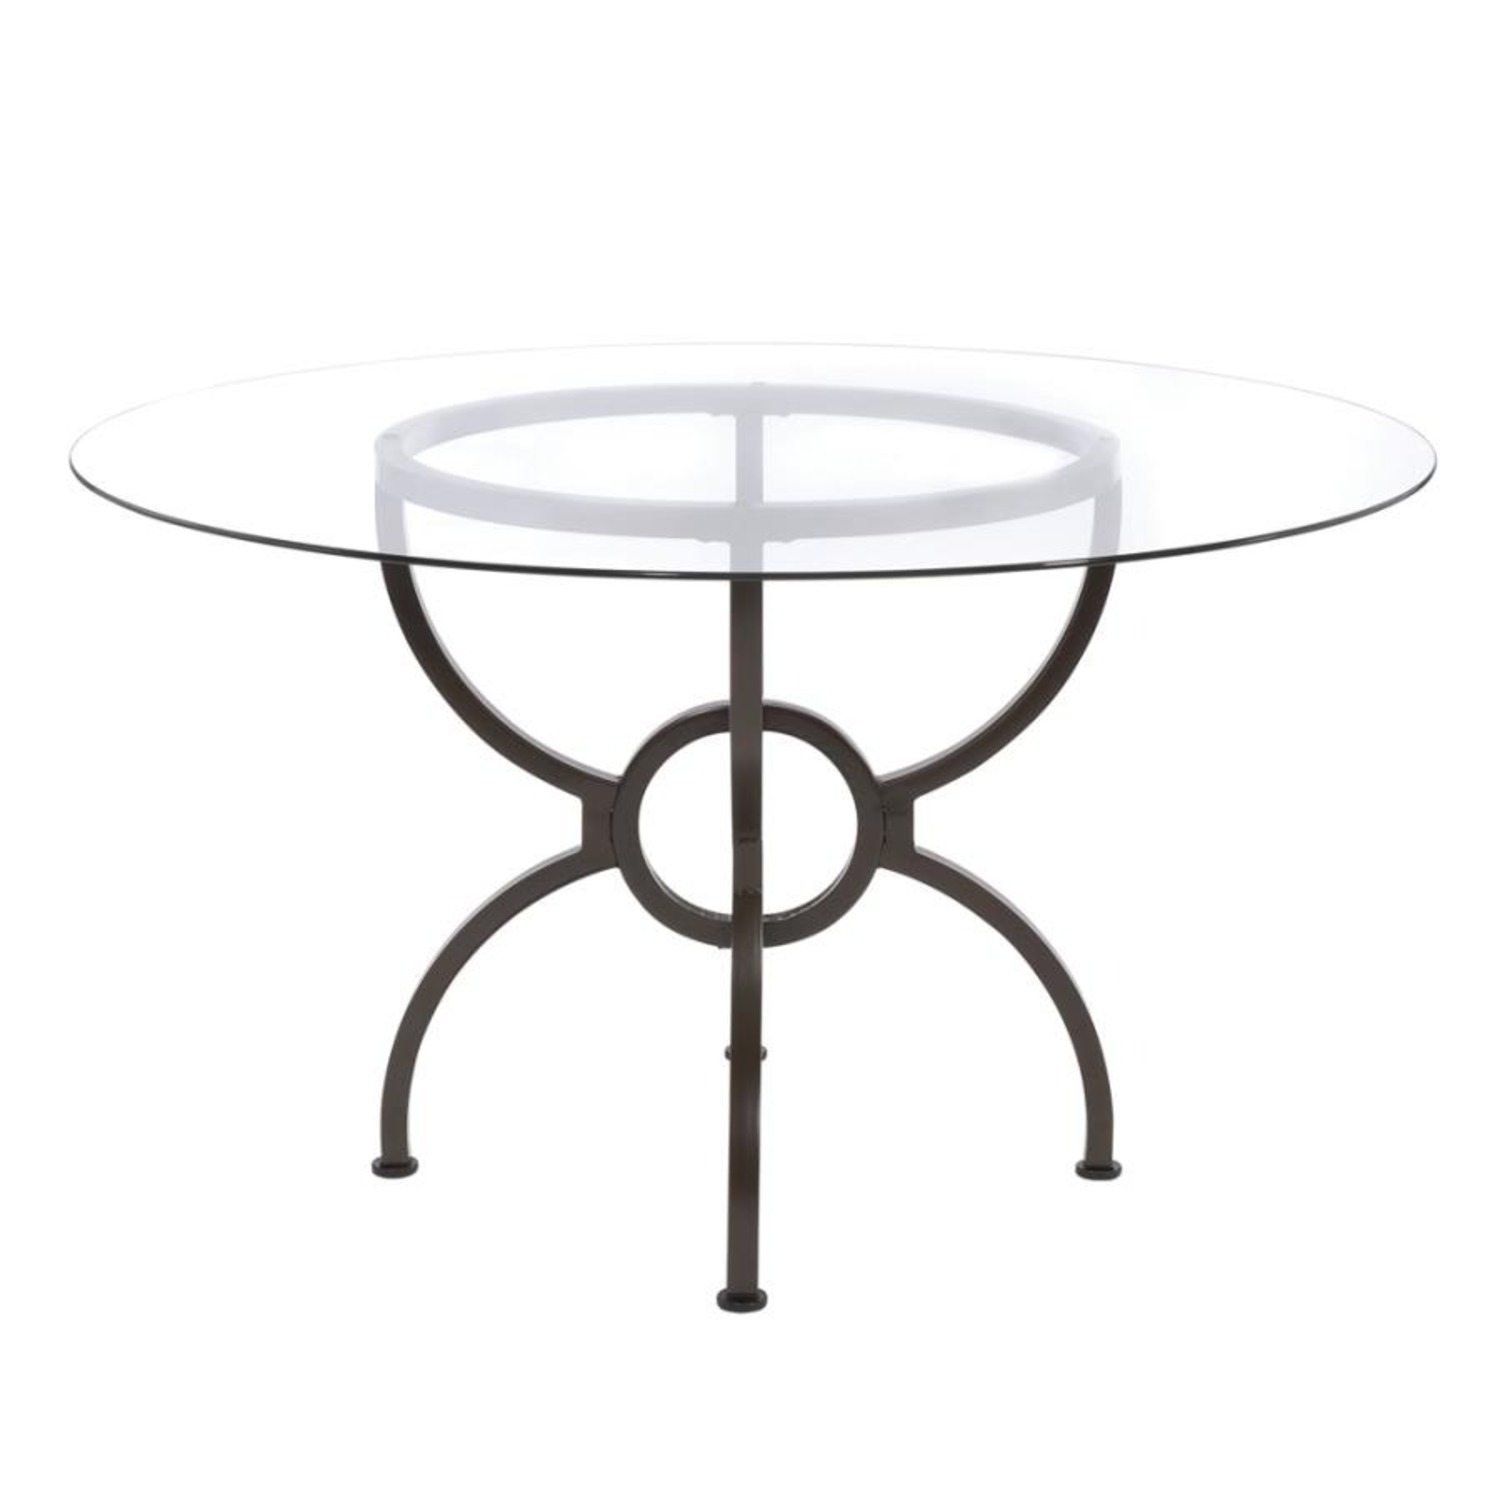 Dining Table In Gunmetal Base W/ Clear Glass Top - image-2